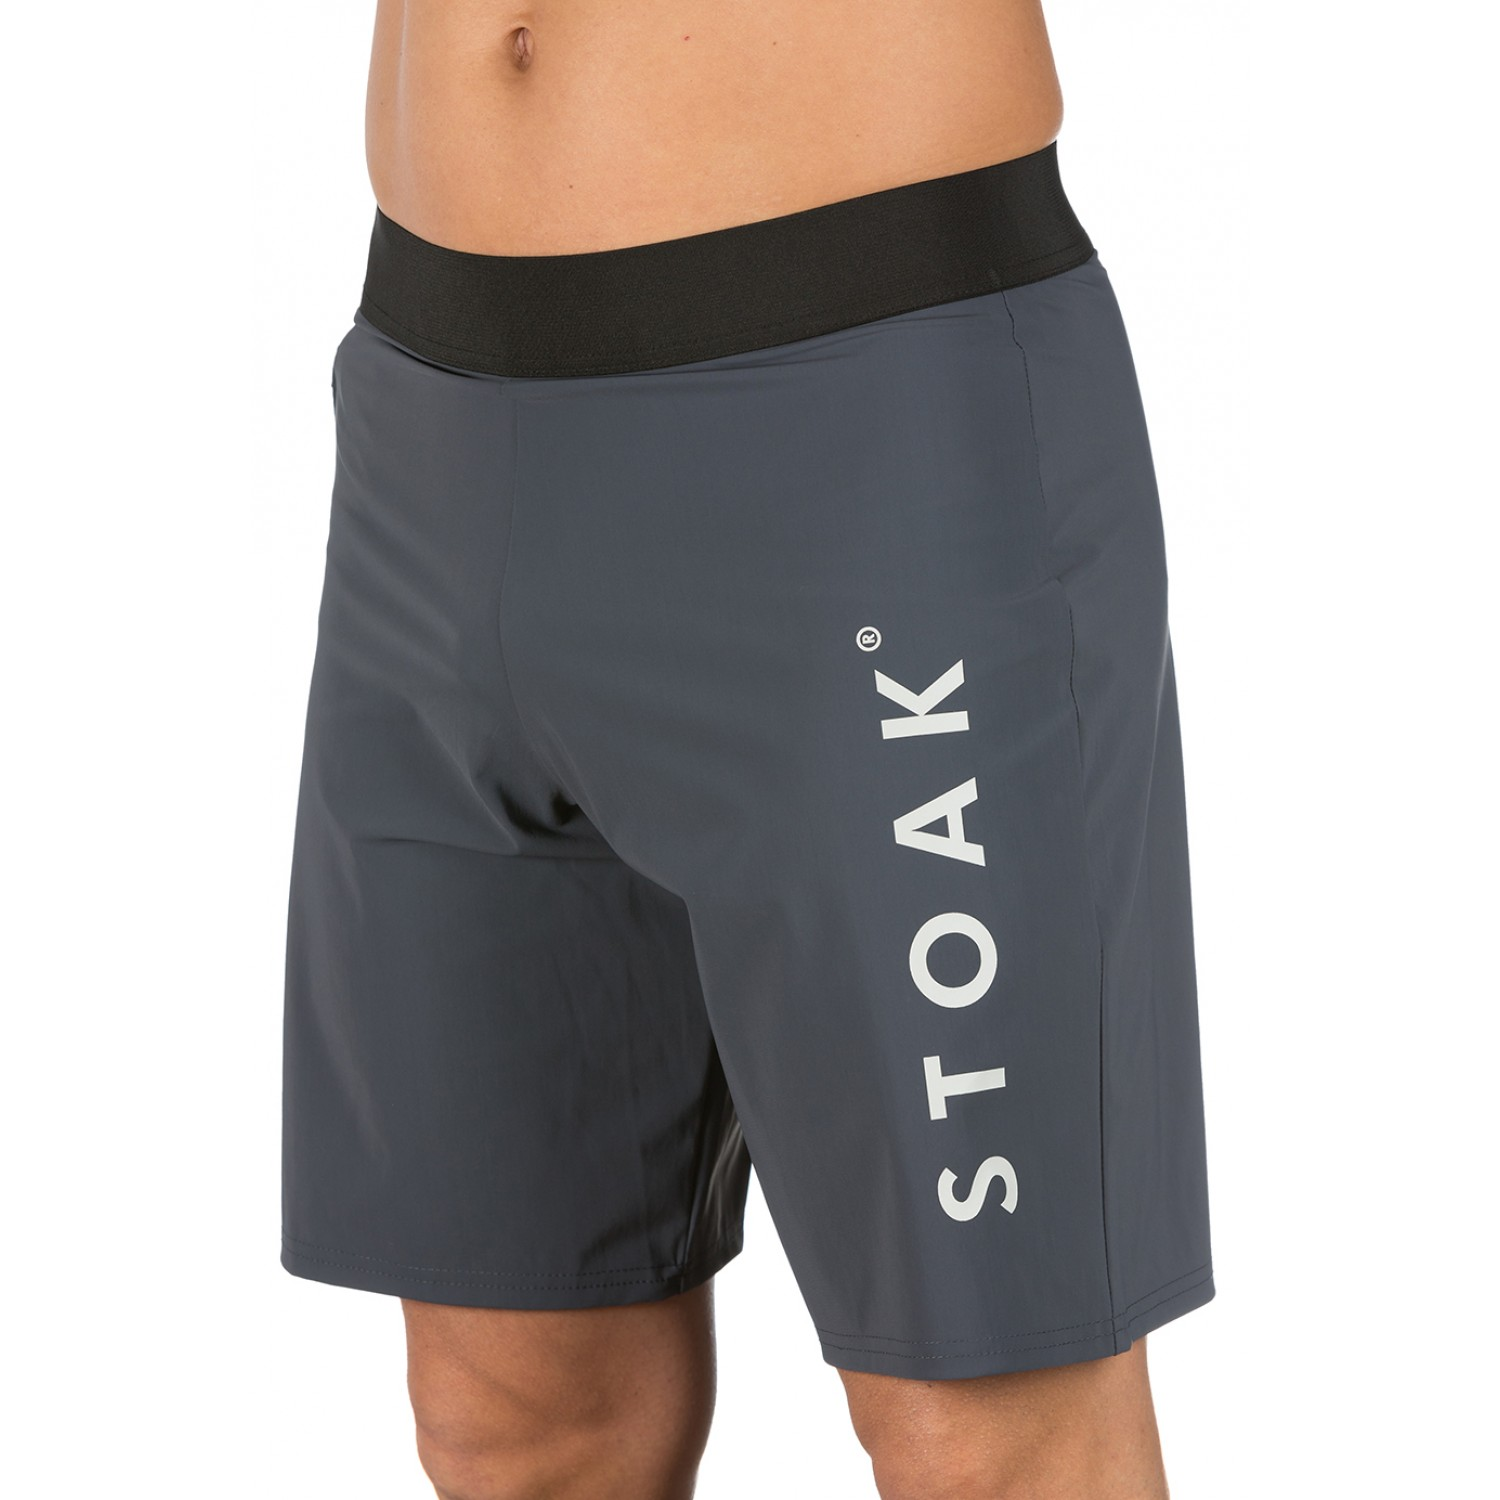 STOAK TITAN Athletic Shorts